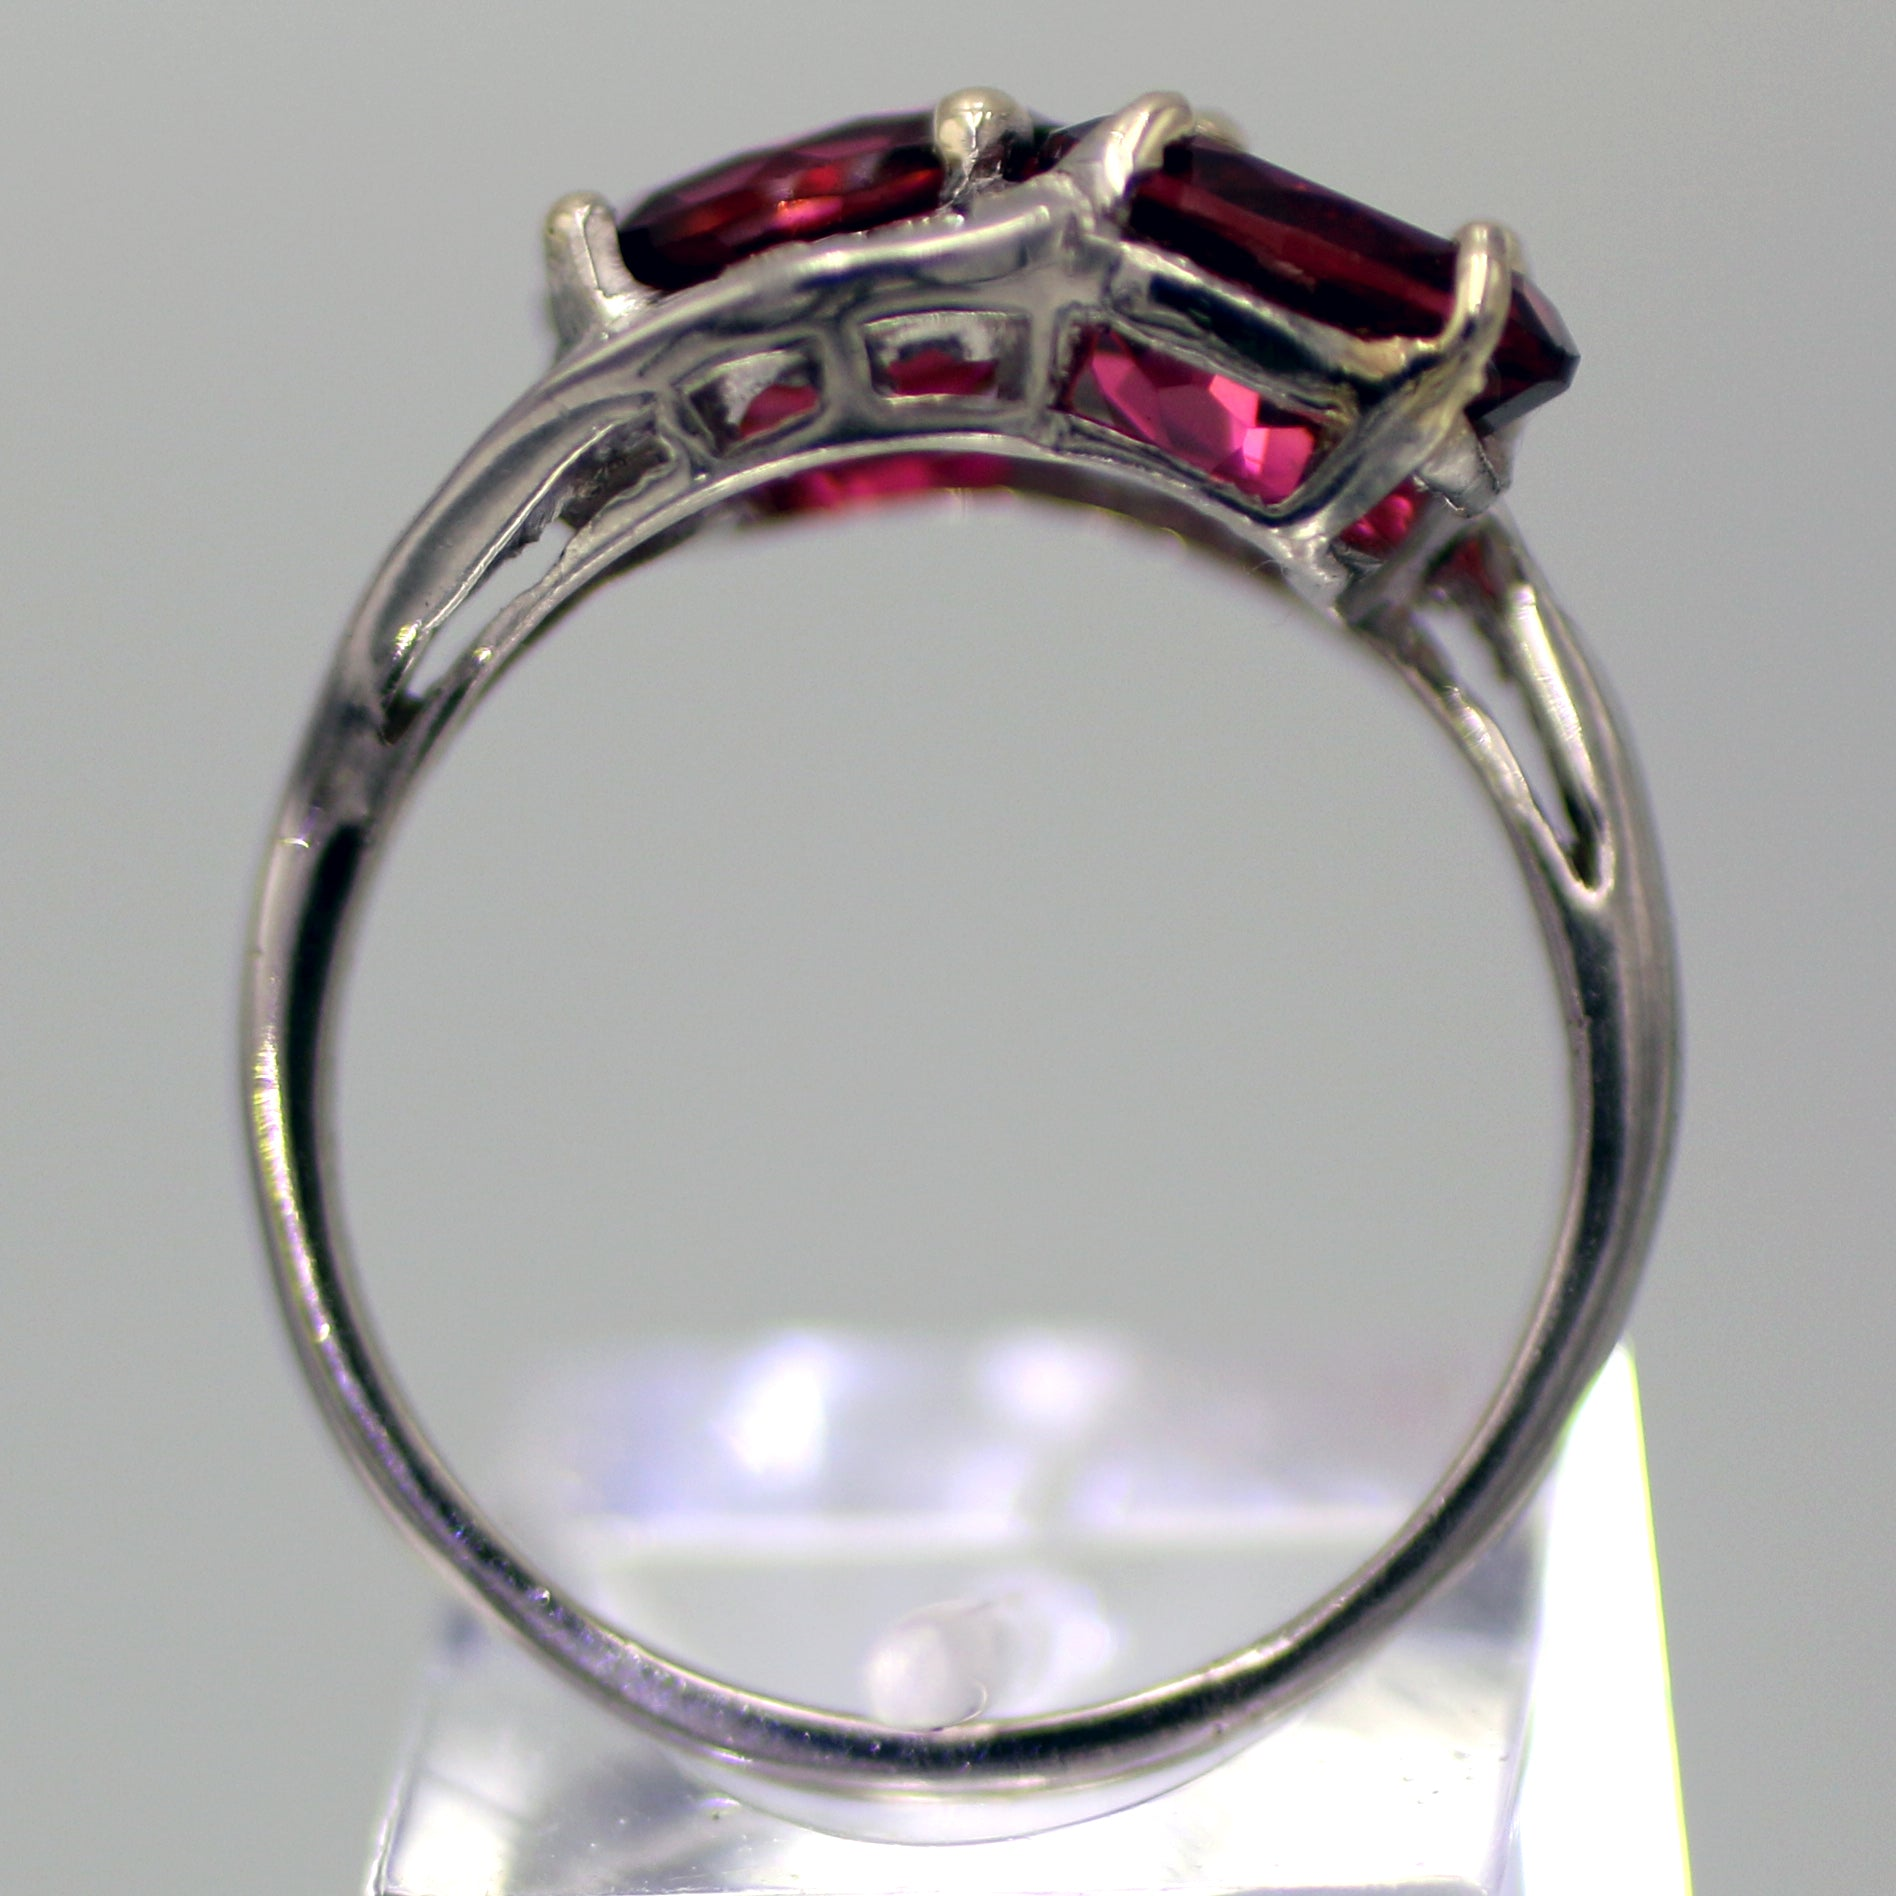 Retro Era 4 Carat Twin Tourmaline & Diamond Ring in Platinum